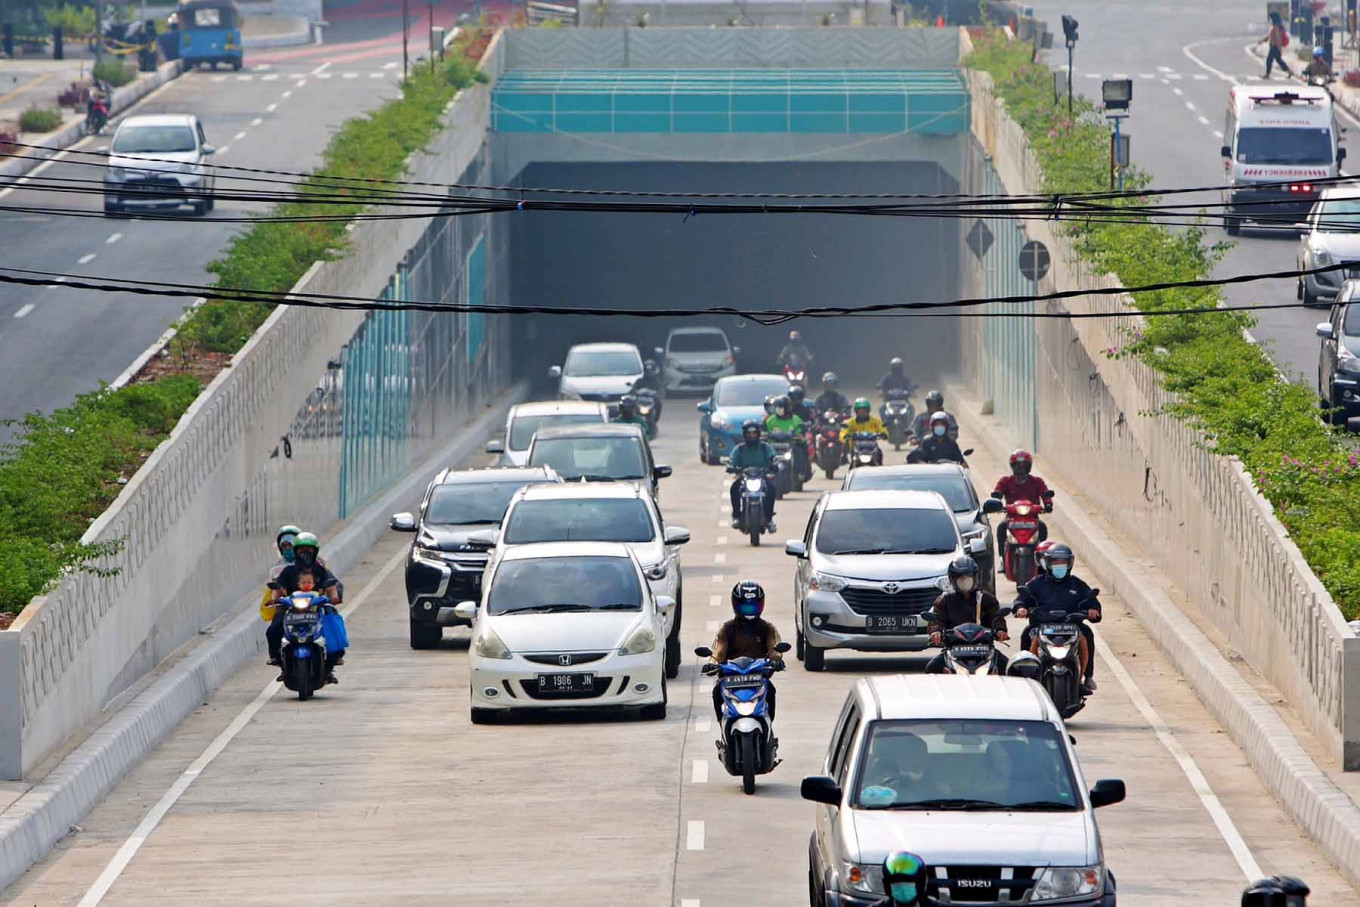 Motorists drive out of the new Senen underpass extension in Central Jakarta on Tuesday, Nov 10. The underpass is expected to ease traffic congestion in the area. JP/Wendra Ajistyatama